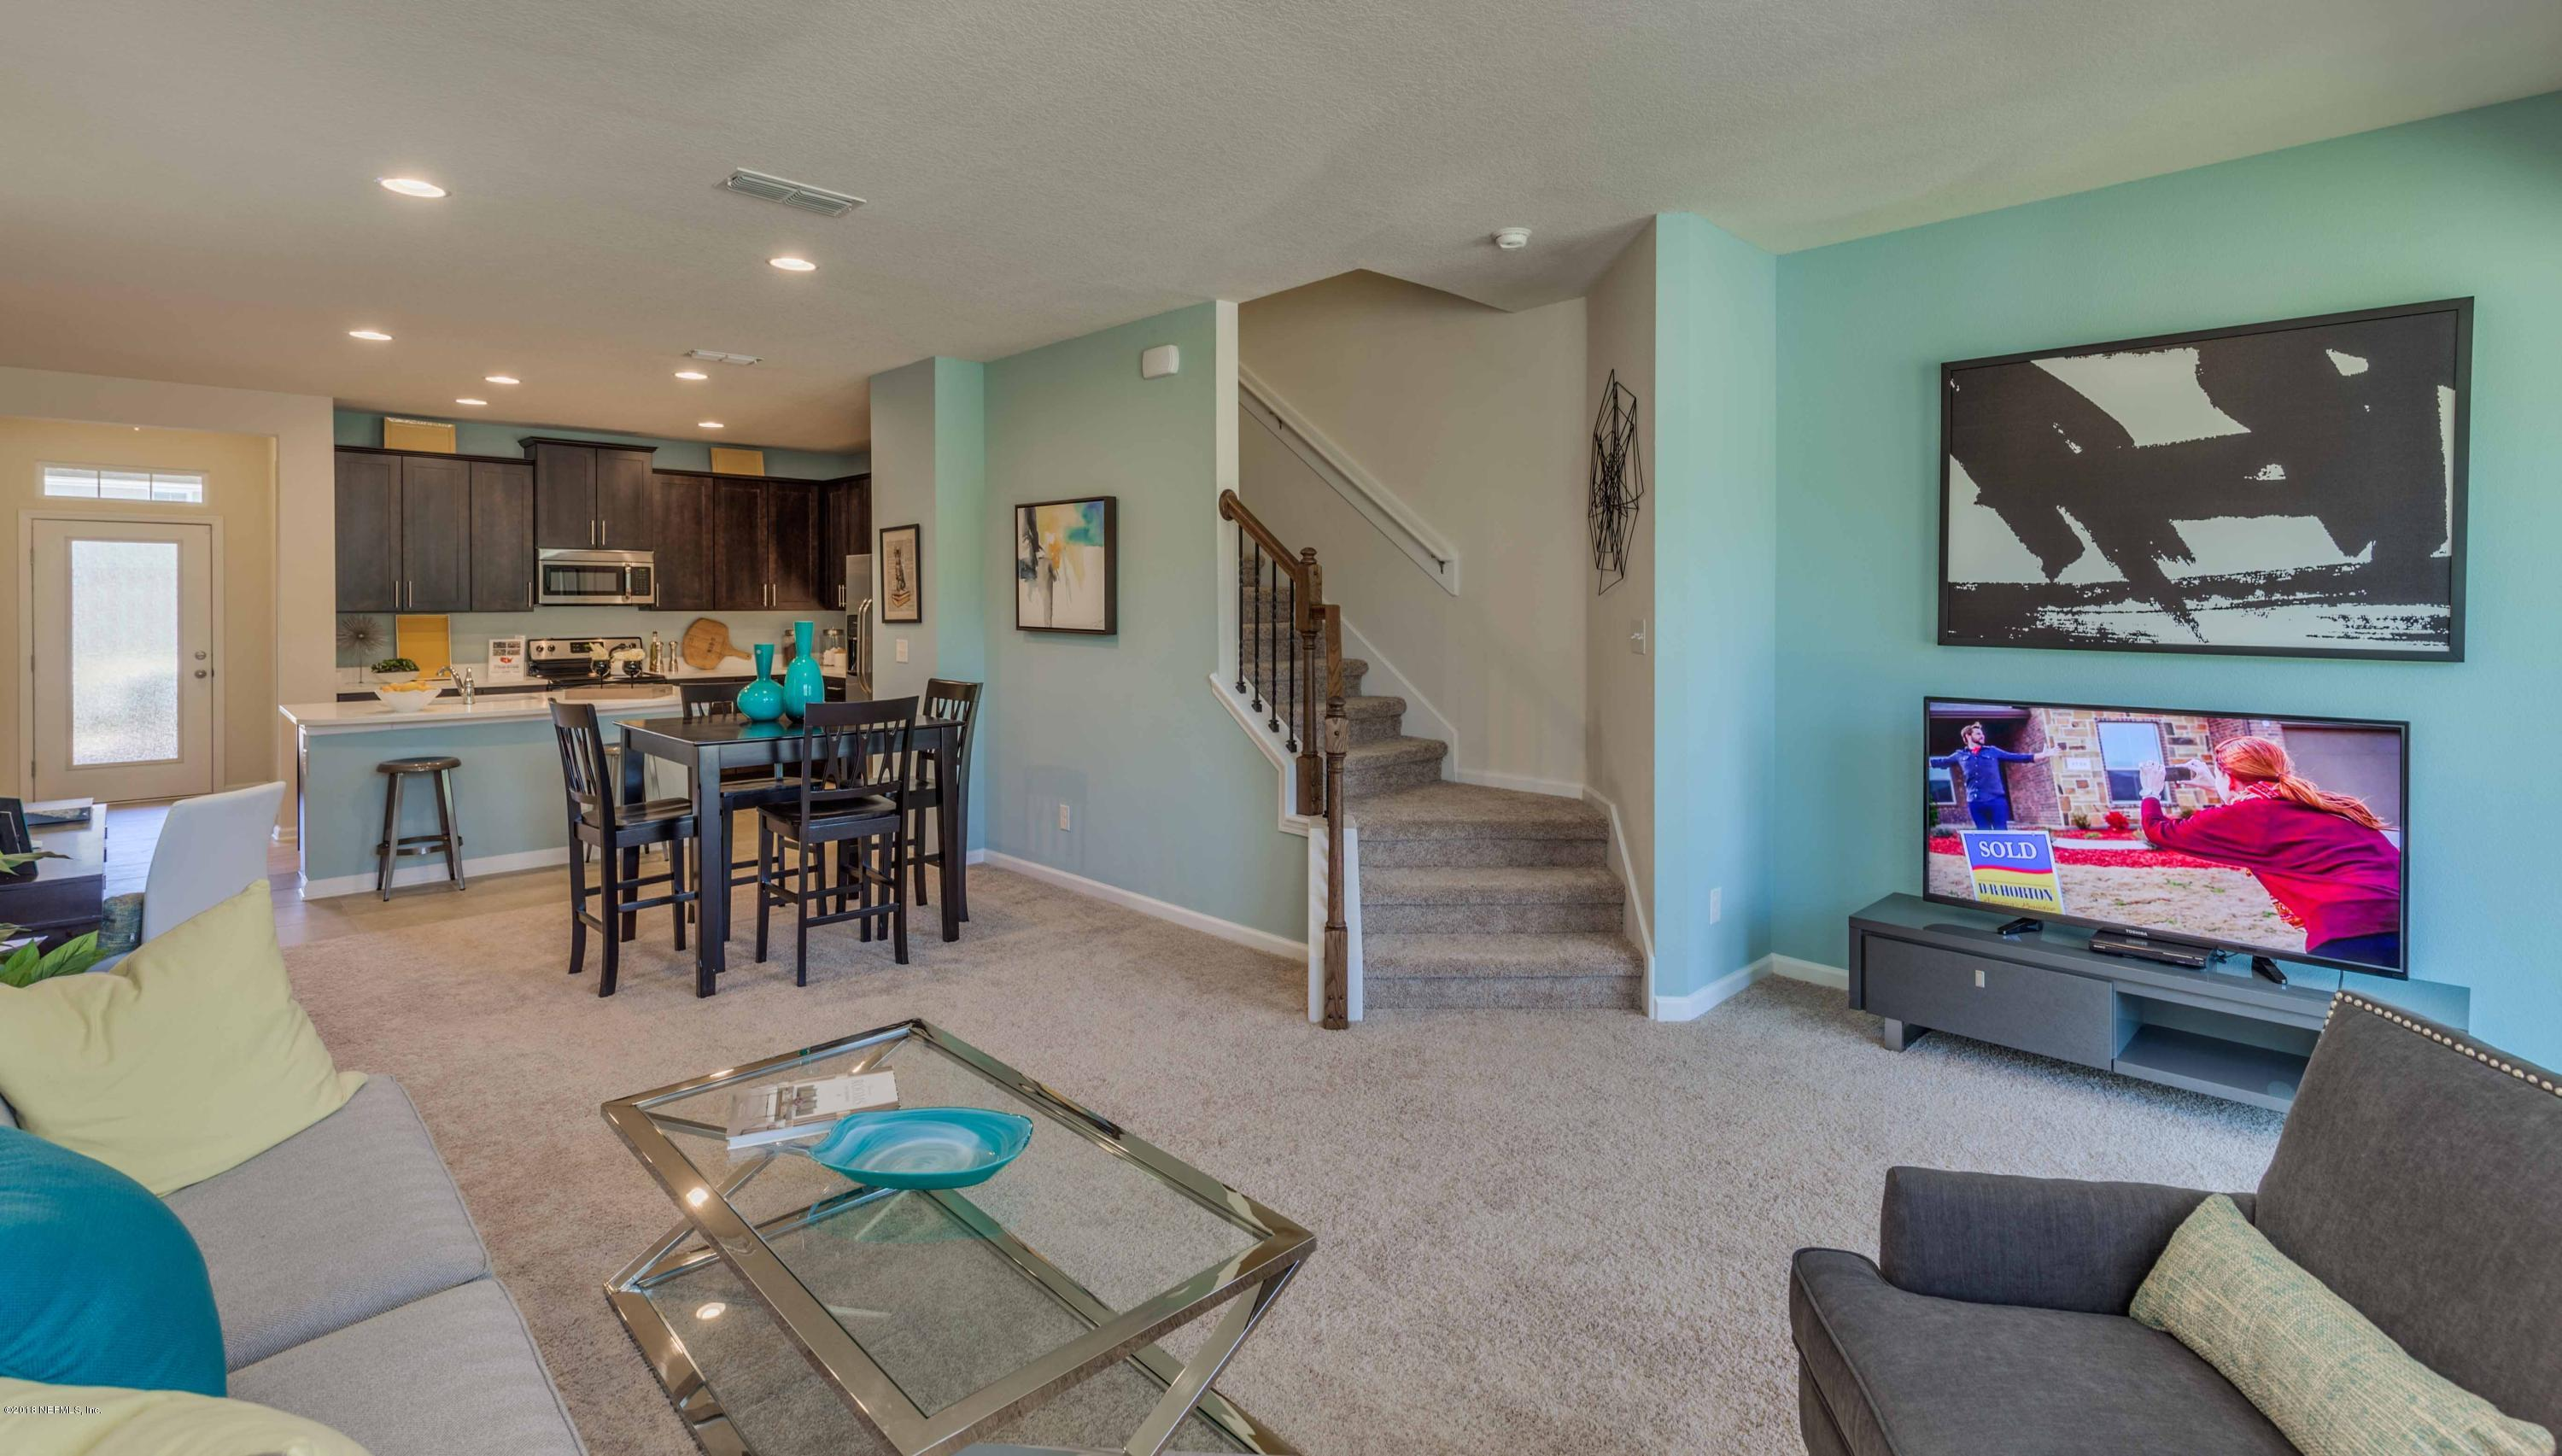 298 SERVIA, ST JOHNS, FLORIDA 32259, 3 Bedrooms Bedrooms, ,2 BathroomsBathrooms,Residential - townhome,For sale,SERVIA,936127